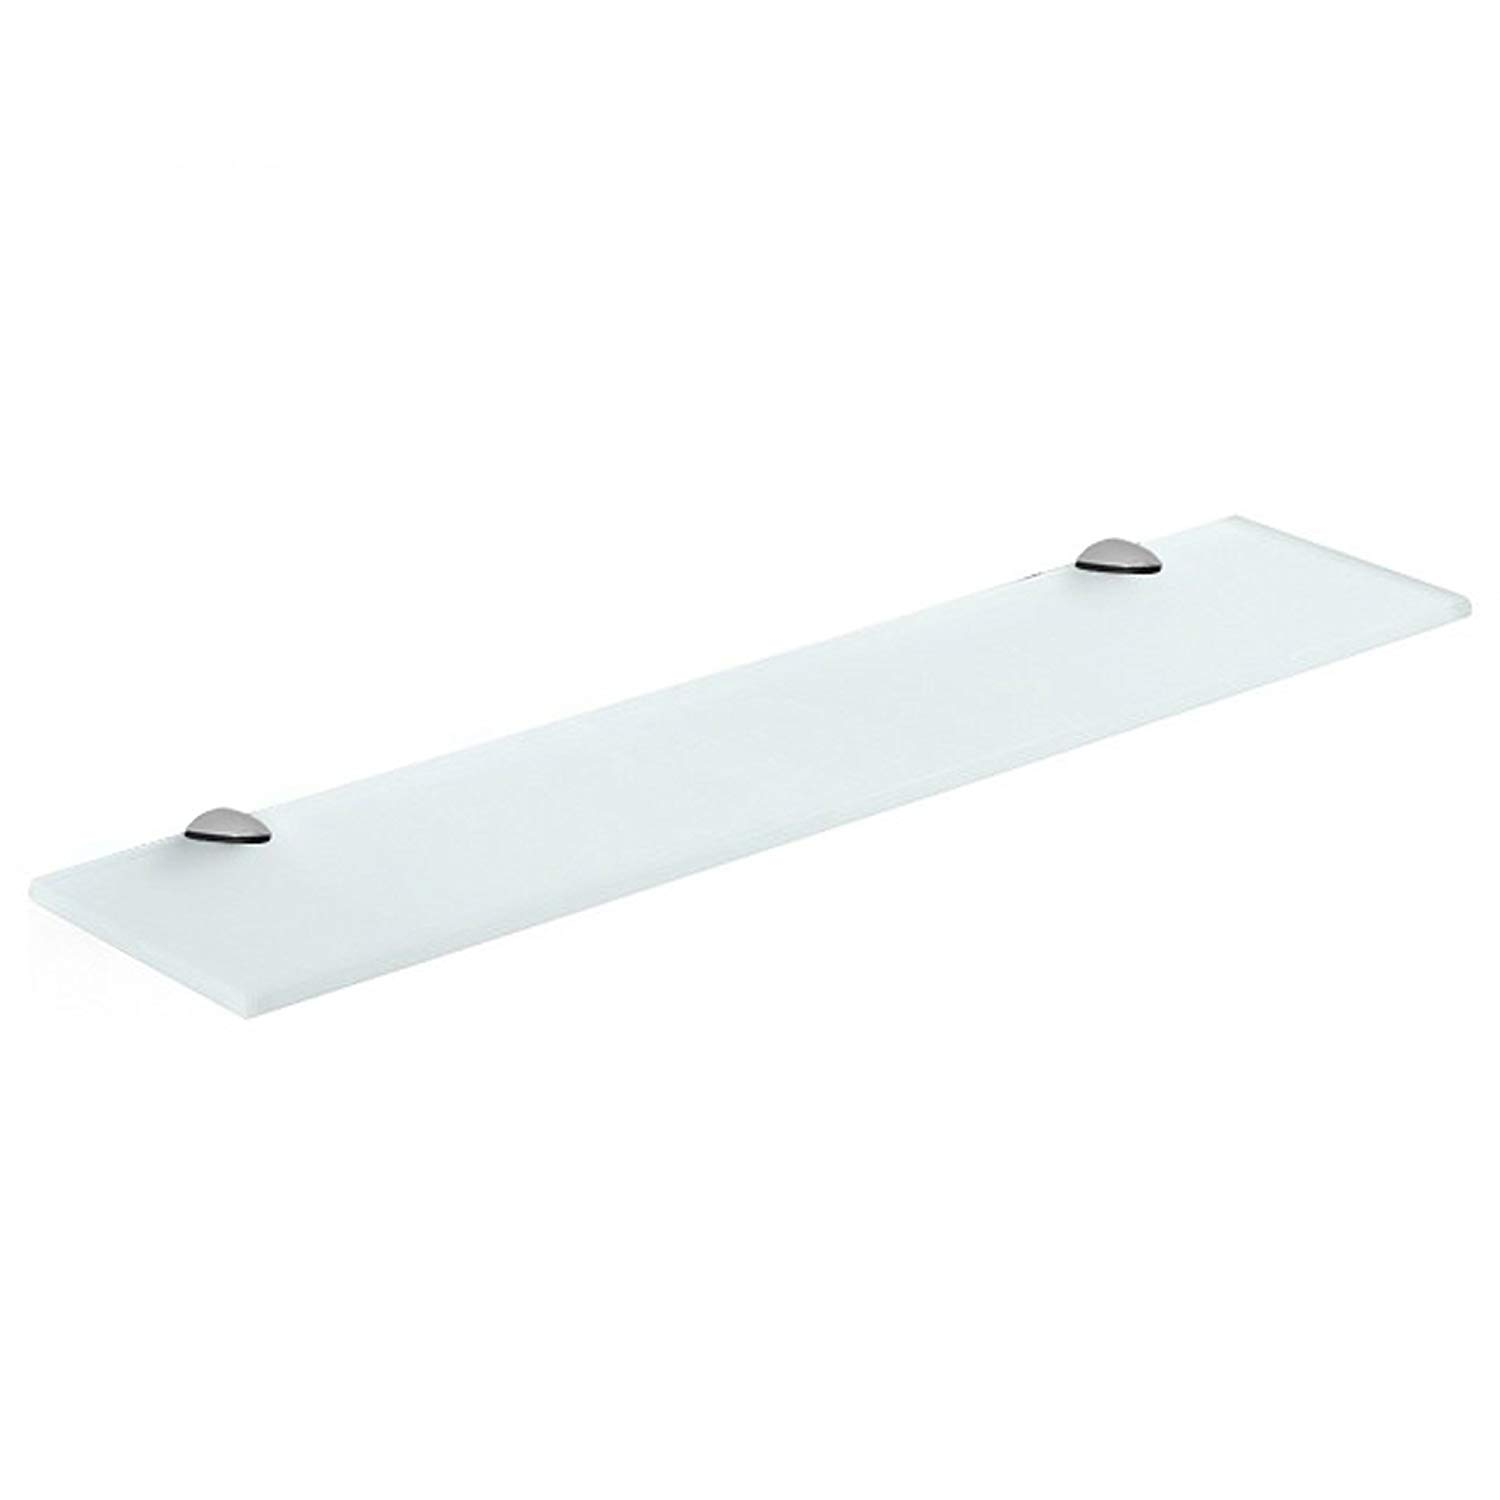 glass and mirror rectangle floating shelf kit with chrome brackets frosted shelves clear shelving canadian tire small closet organizer systems bunnings cube bookshelf foot hooks